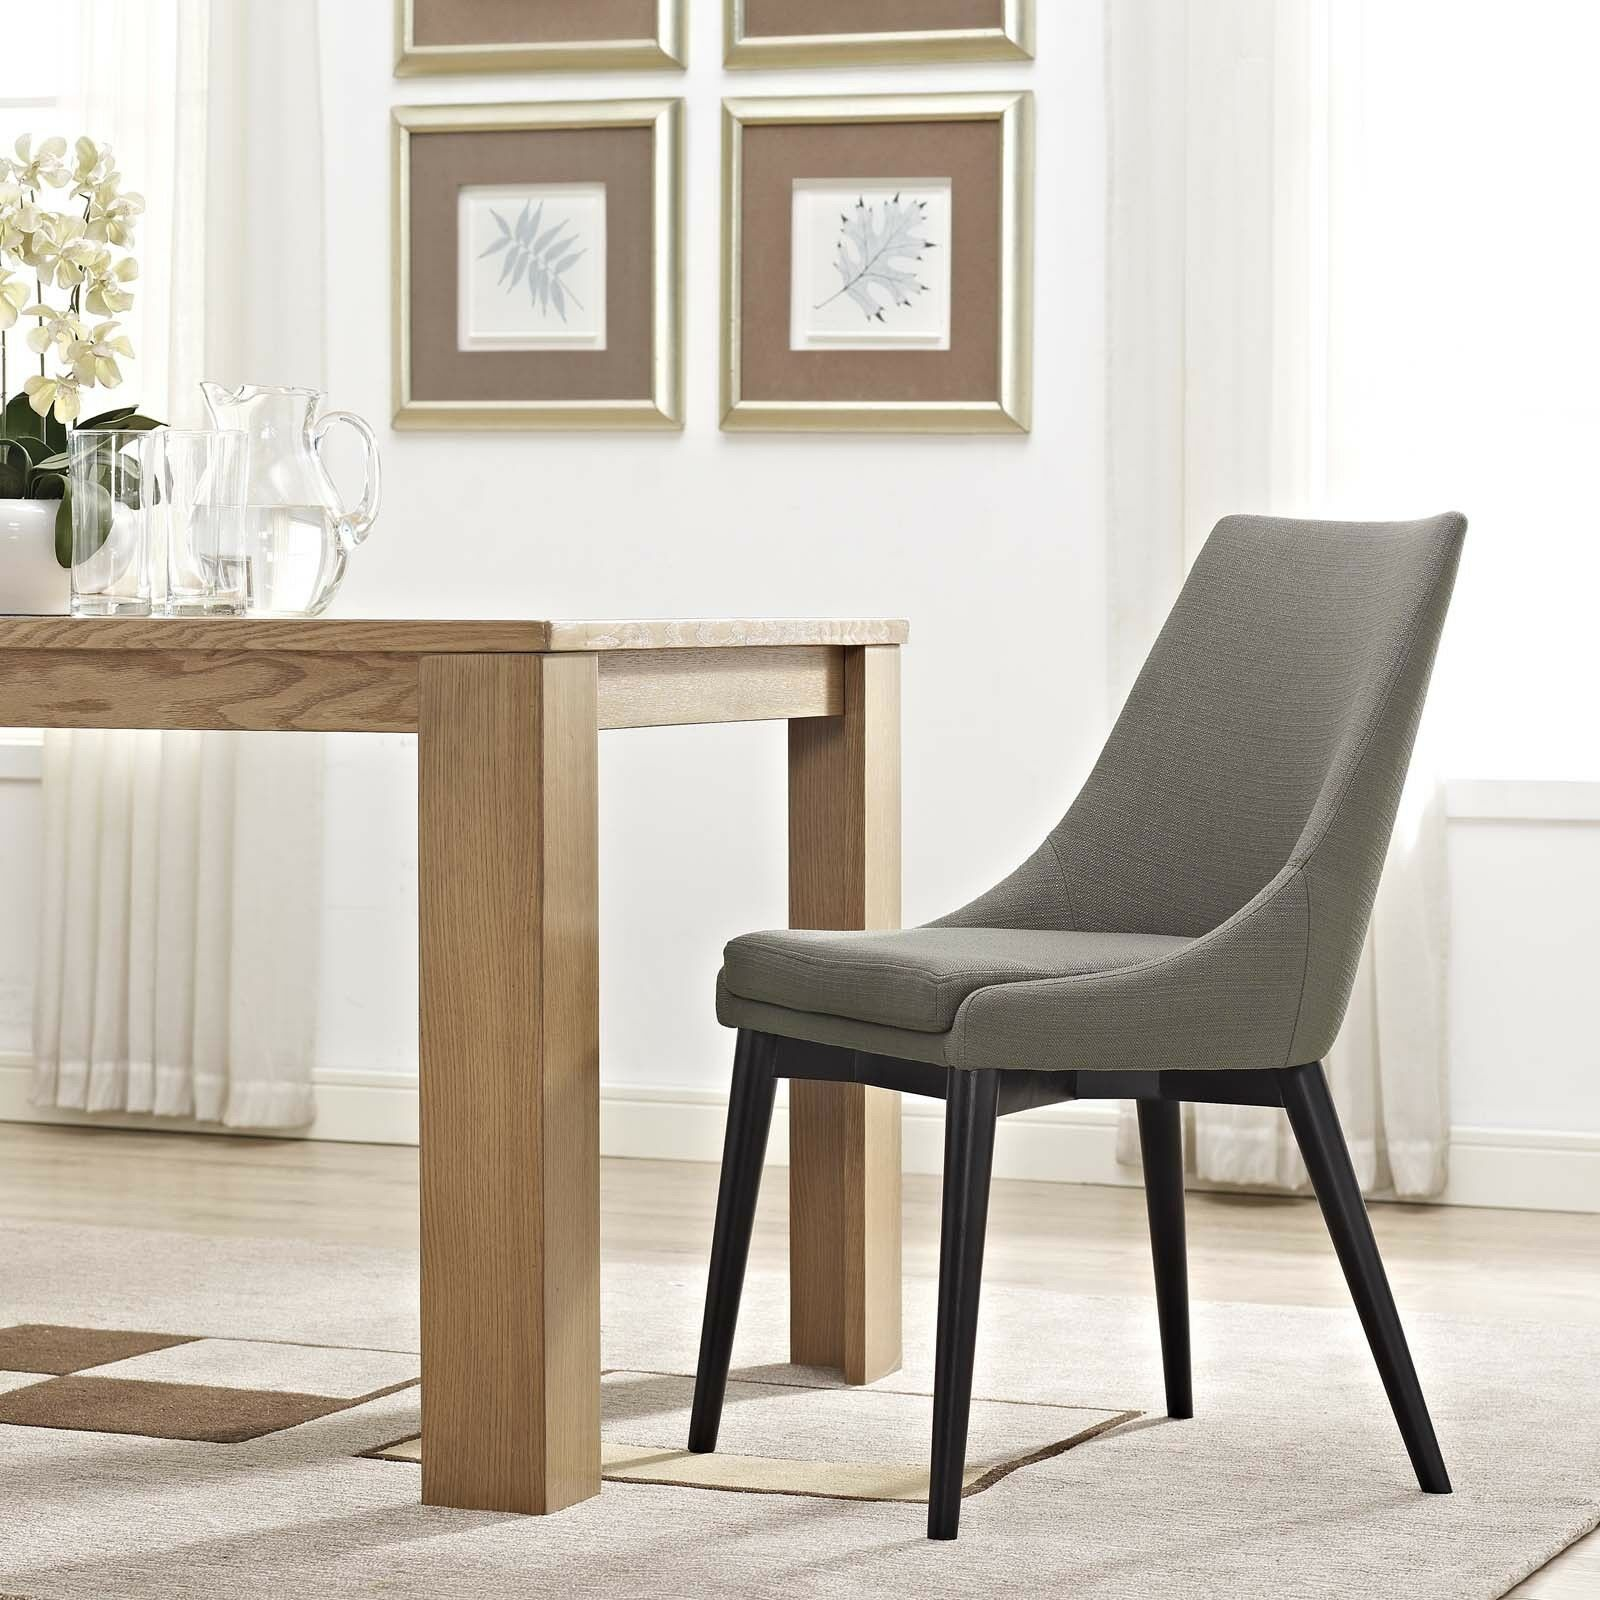 Details about mid century contemporary modern granite fabric upholstered dining side chair